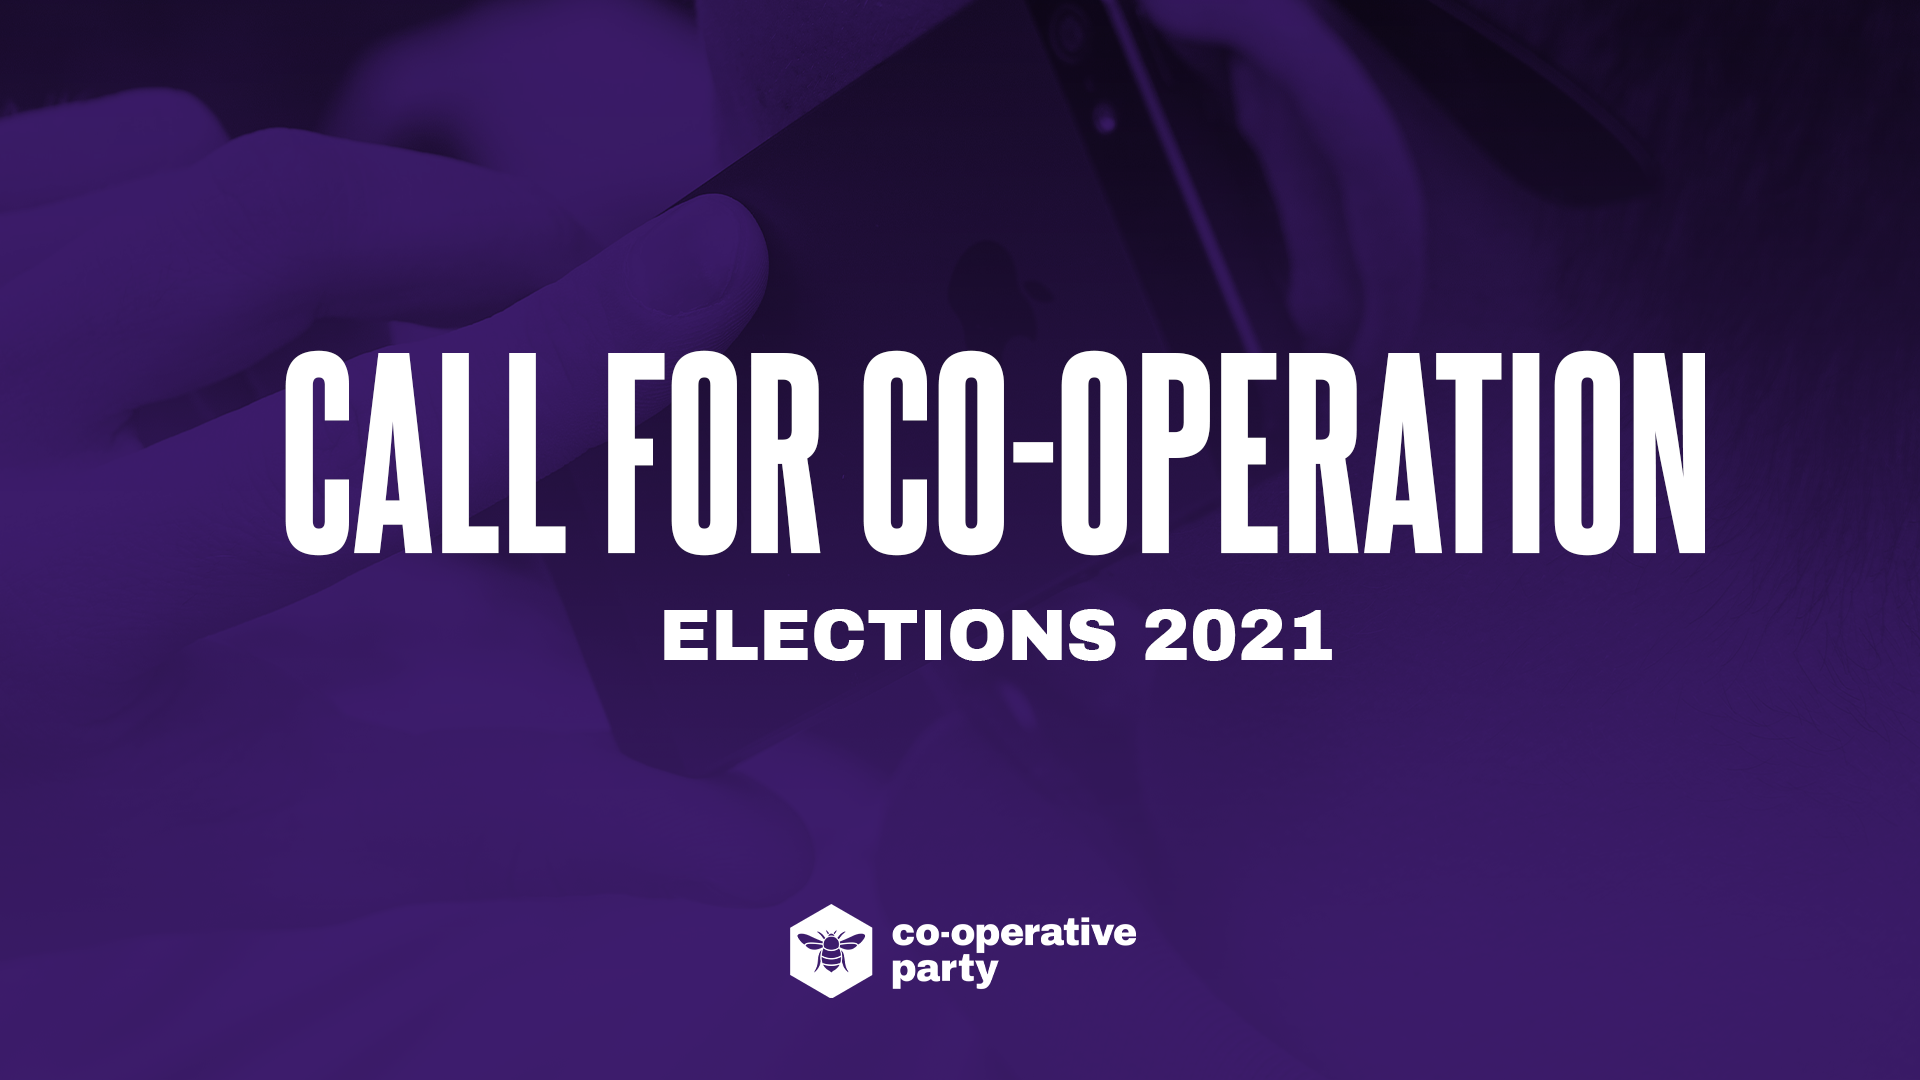 Call for Co-operation Generic